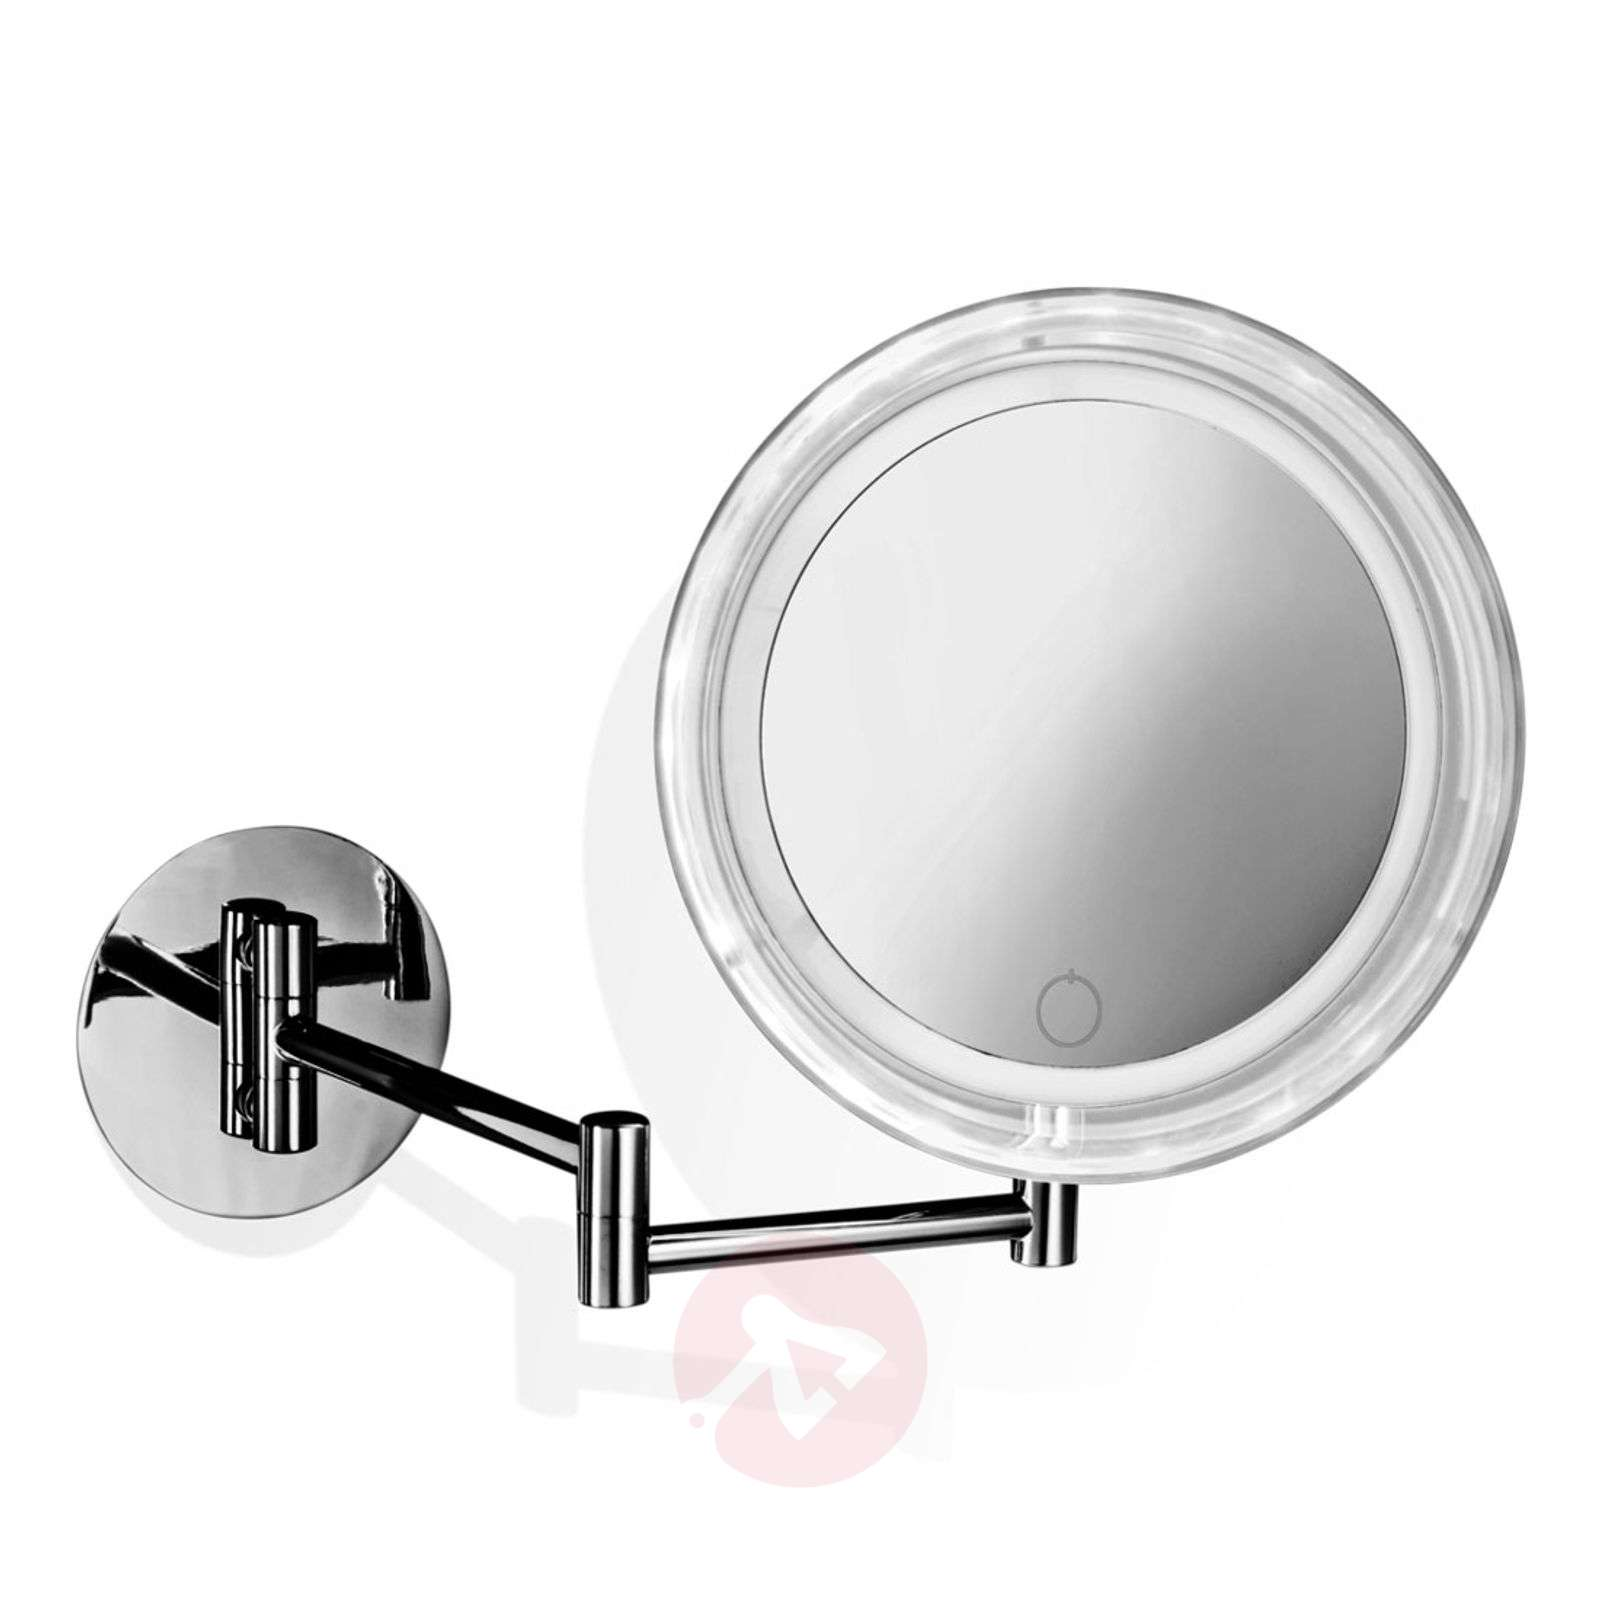 Decor Walther BS 17 Touch LED wall mirror round-2504975-01